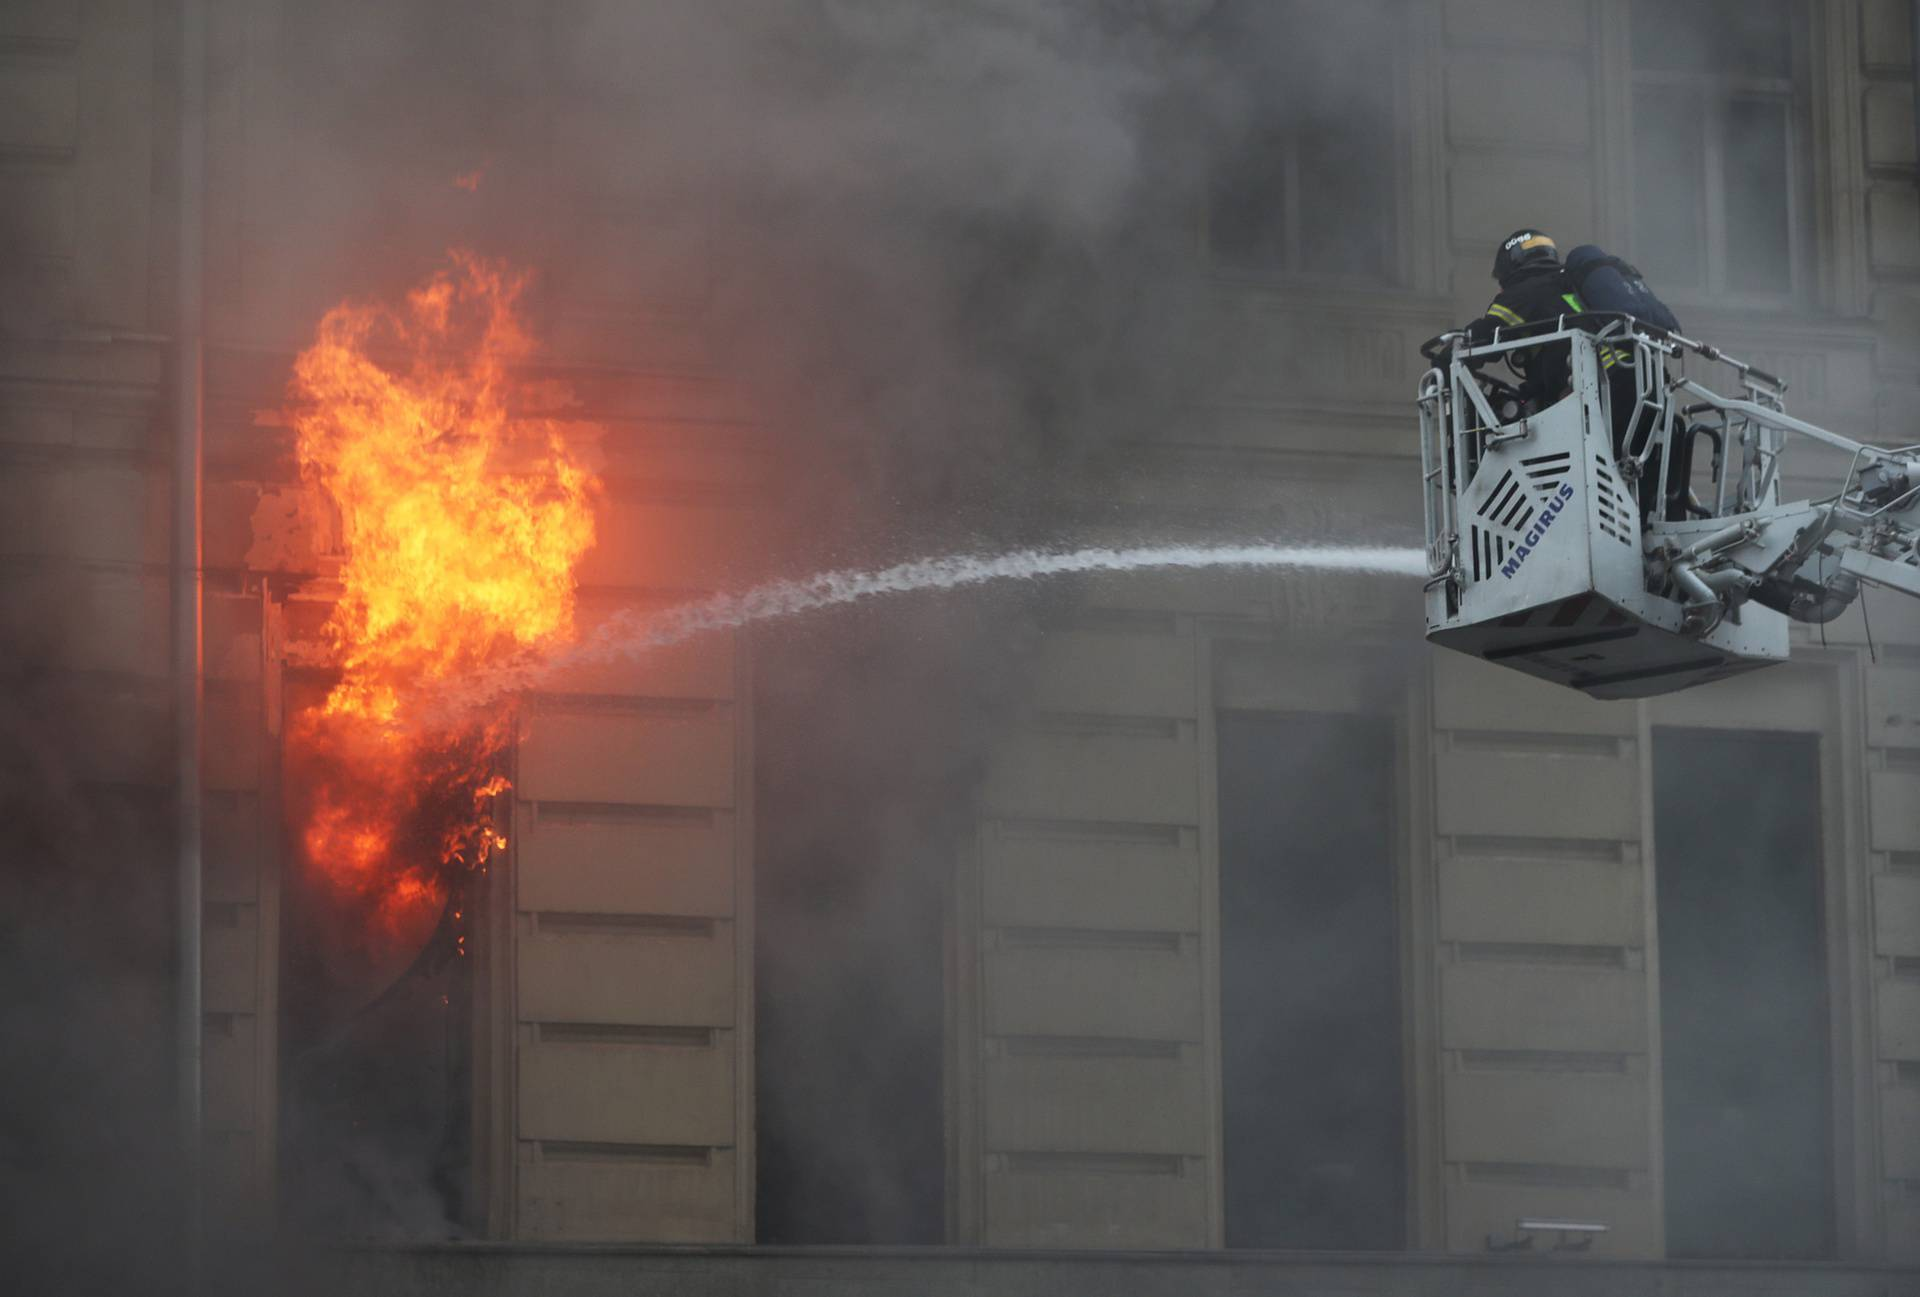 Firefighters work to extinguish a fire at a building in central Moscow